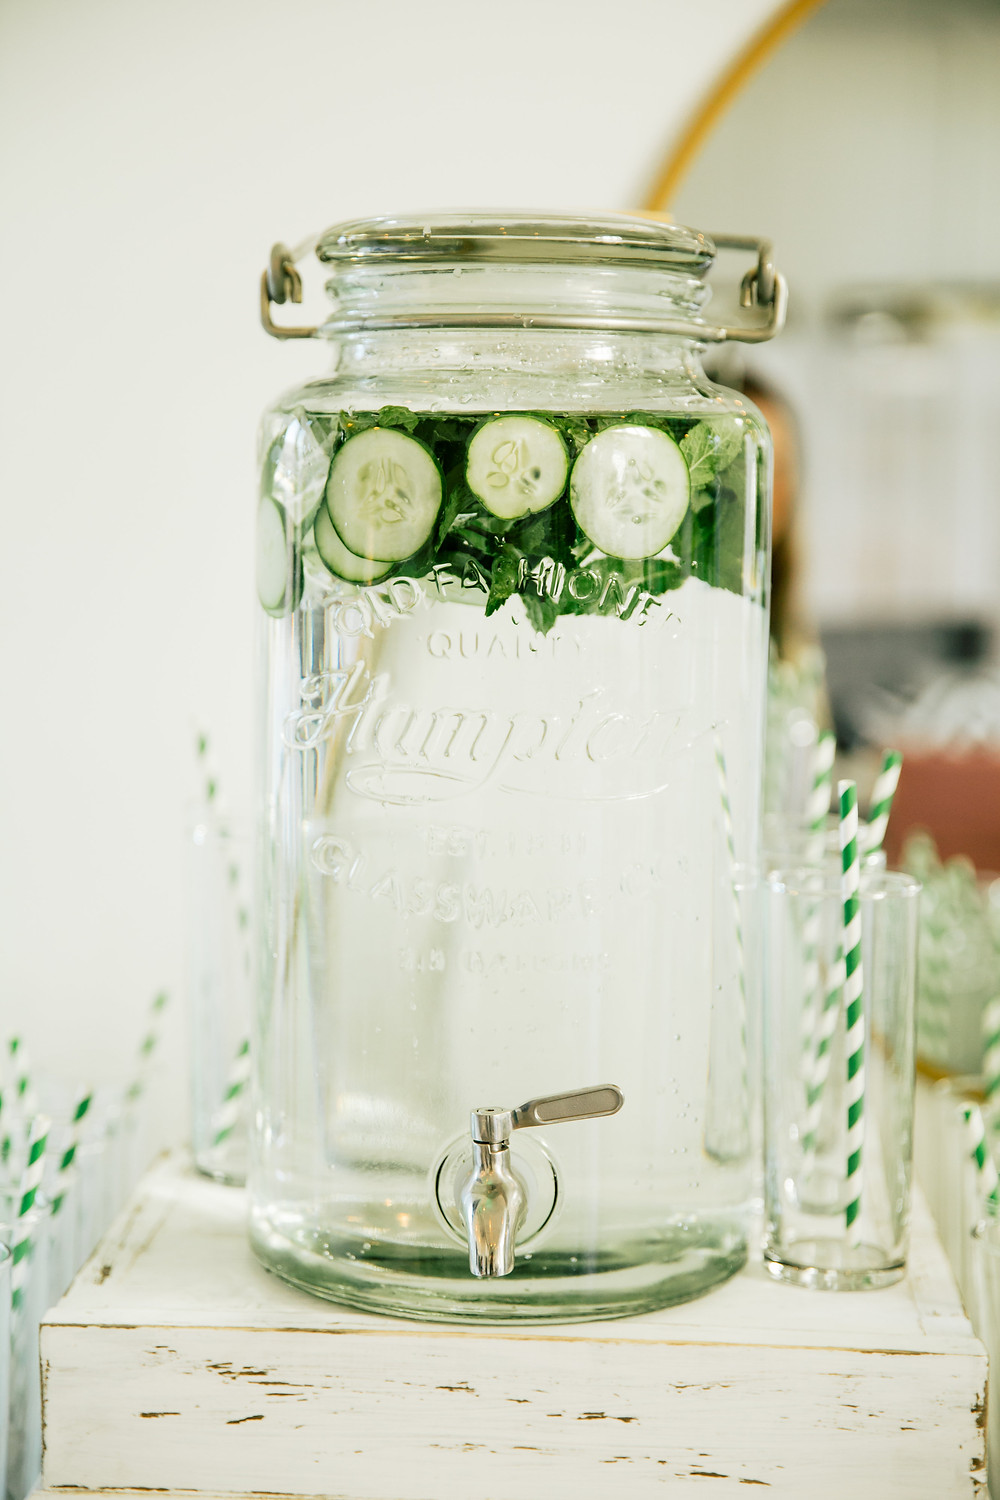 Cucumber Basil infused water urn surrounded by glases with green striped straws